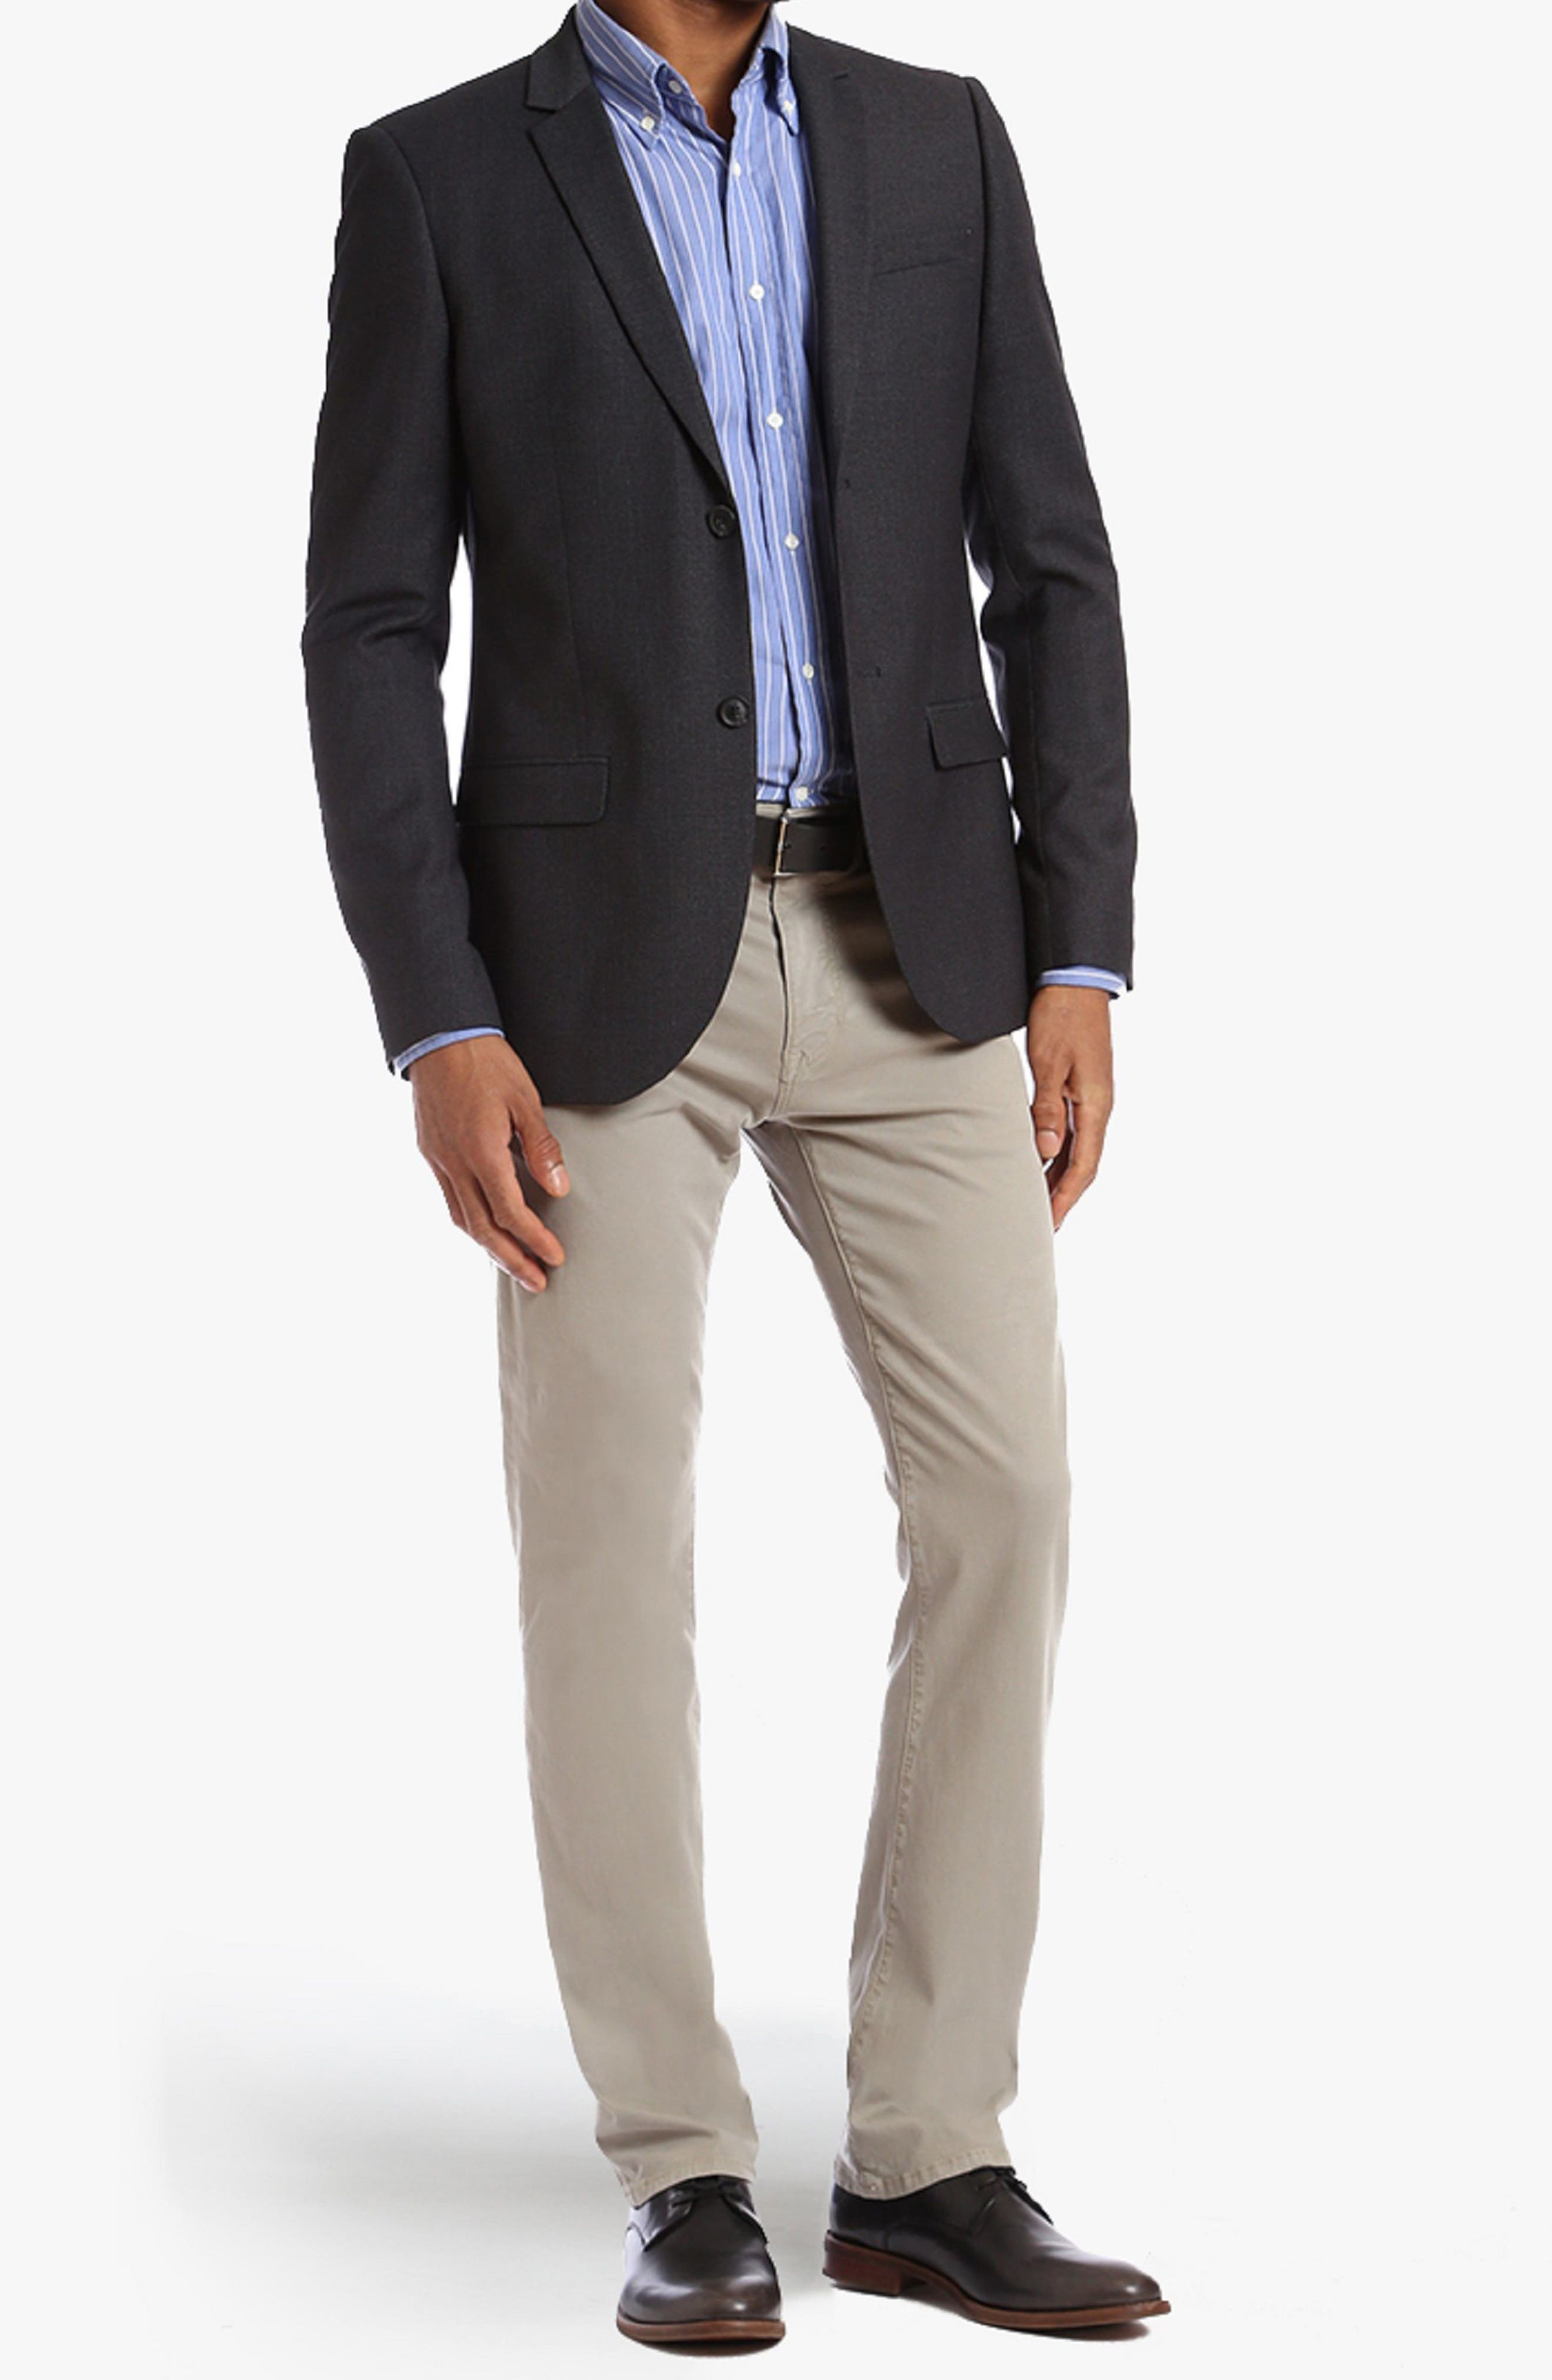 Courage Straight Fit Twill Pants,                             Alternate thumbnail 4, color,                             KHAKI FINE TWILL